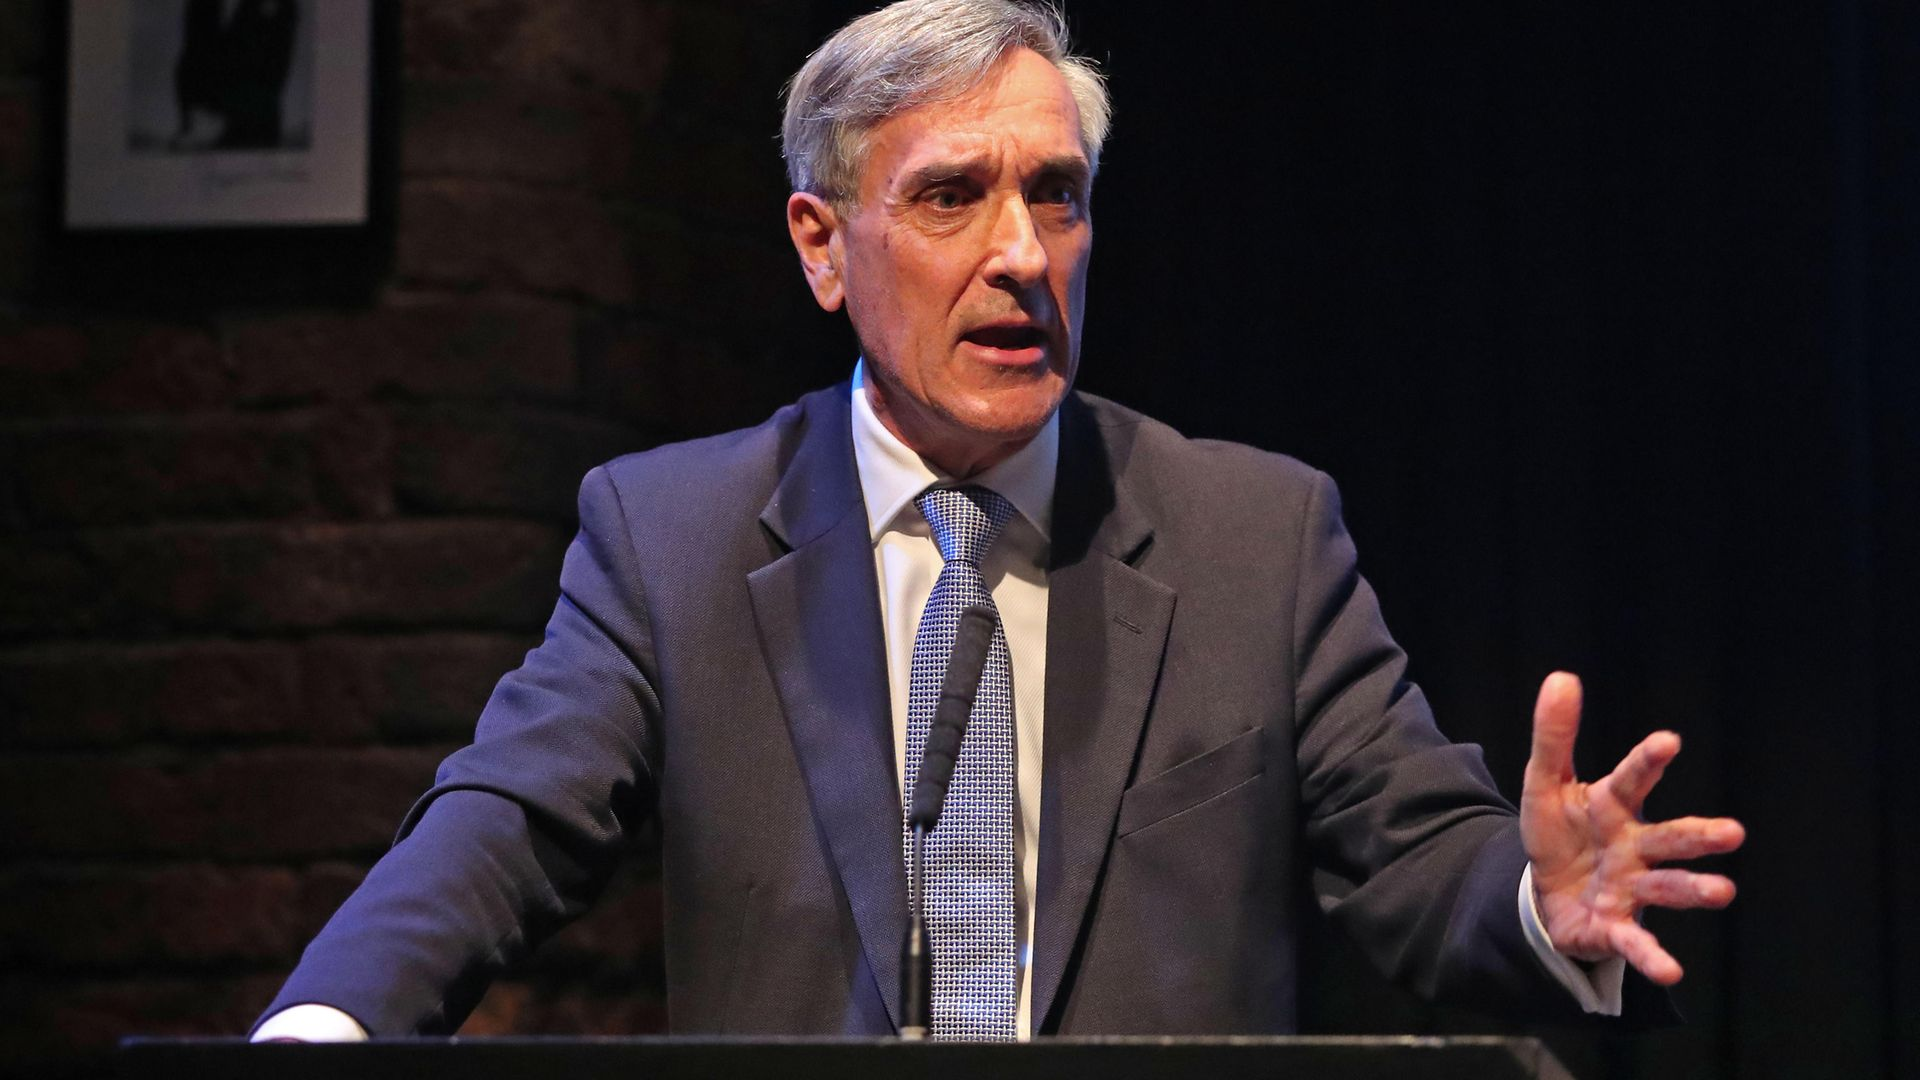 Sir John Redwood MP at the Conservative Party Conference at the Manchester Convention Centre. - Credit: PA